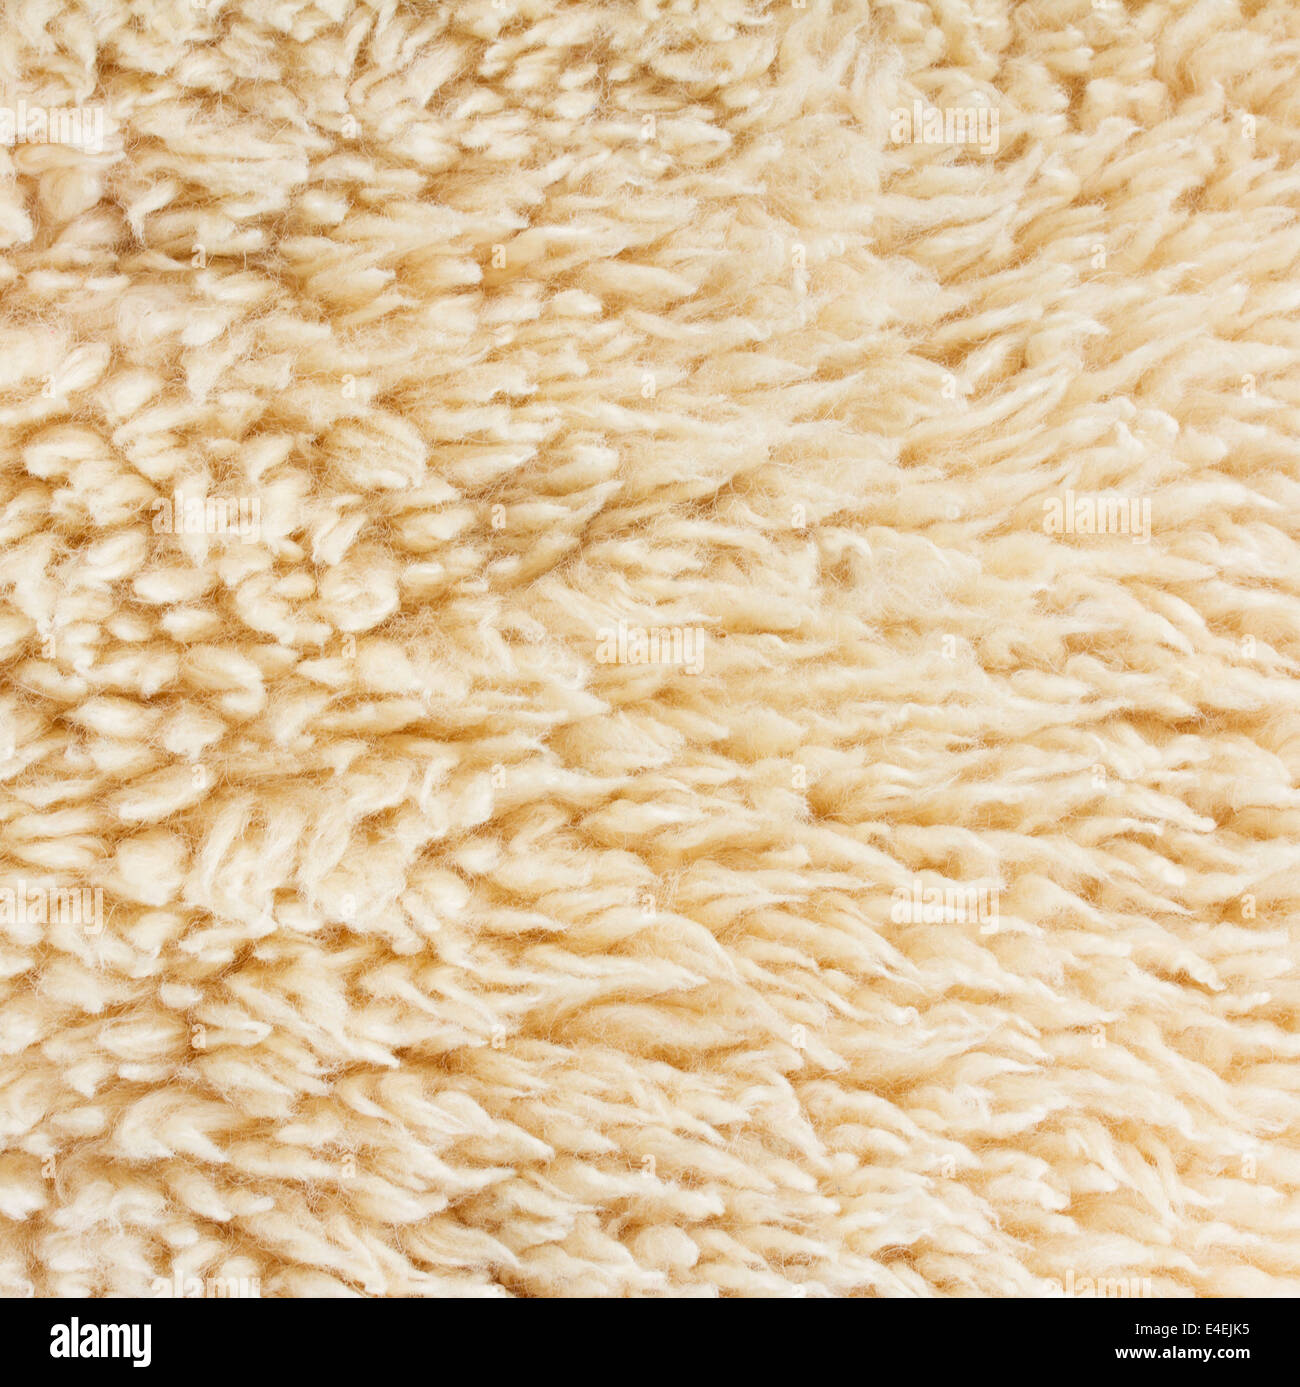 abstract sheep fur background - Stock Image